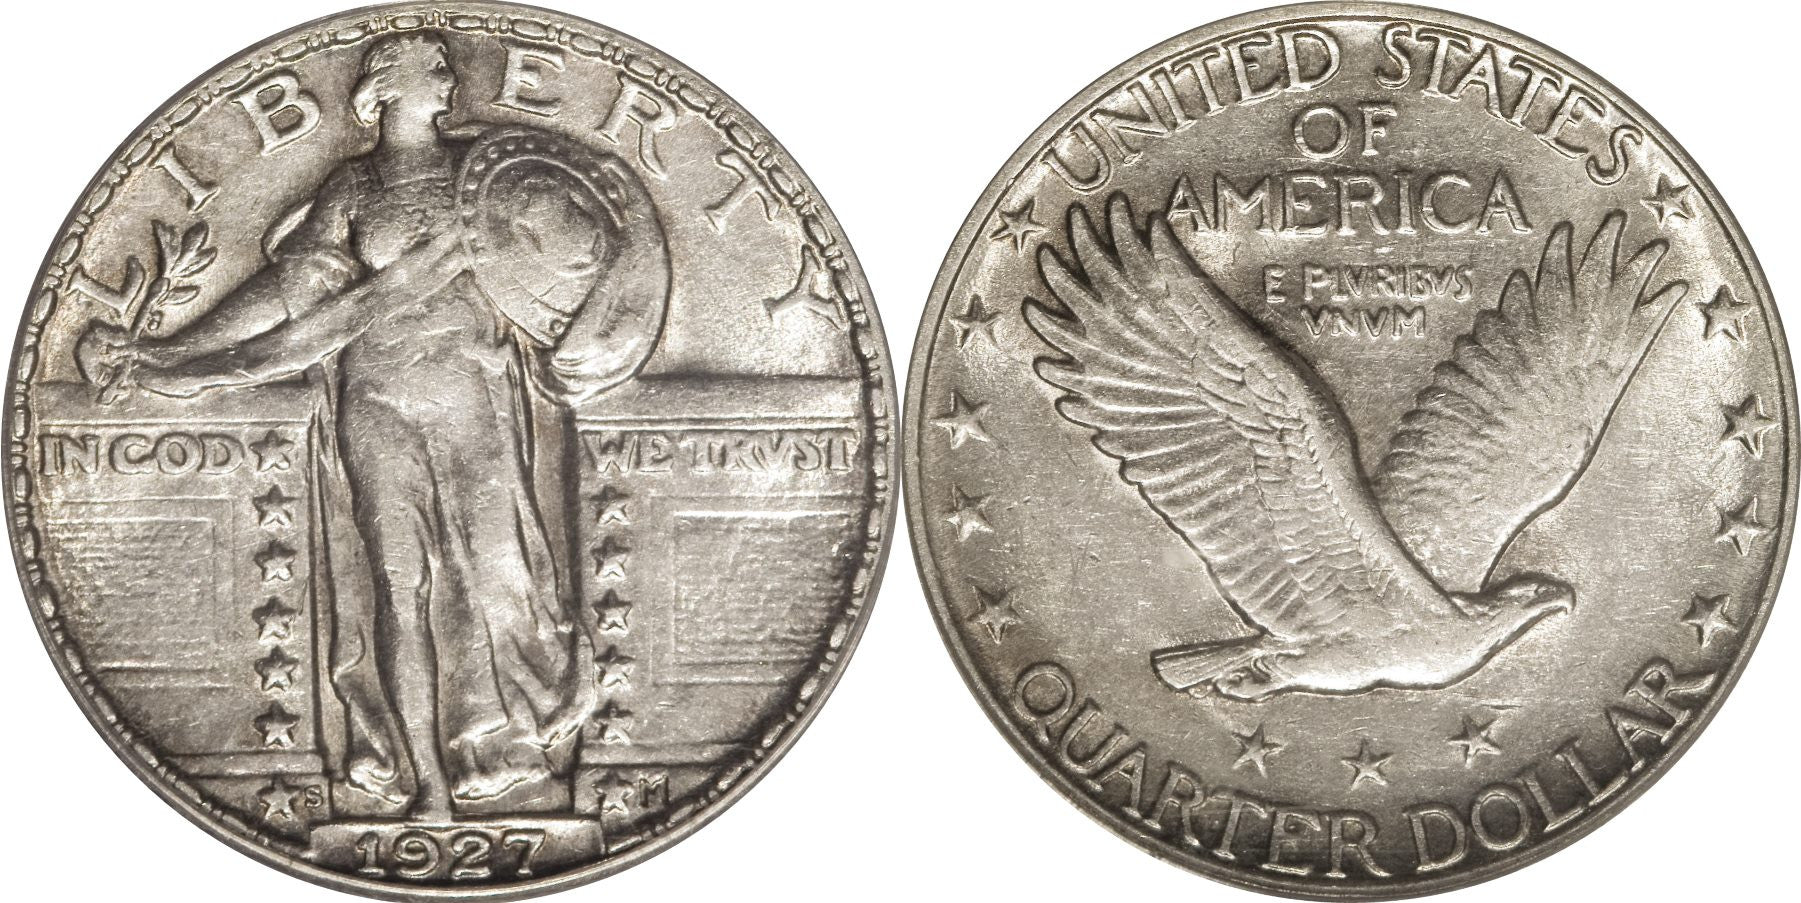 Standing Liberty Quarter AU-50 Condition